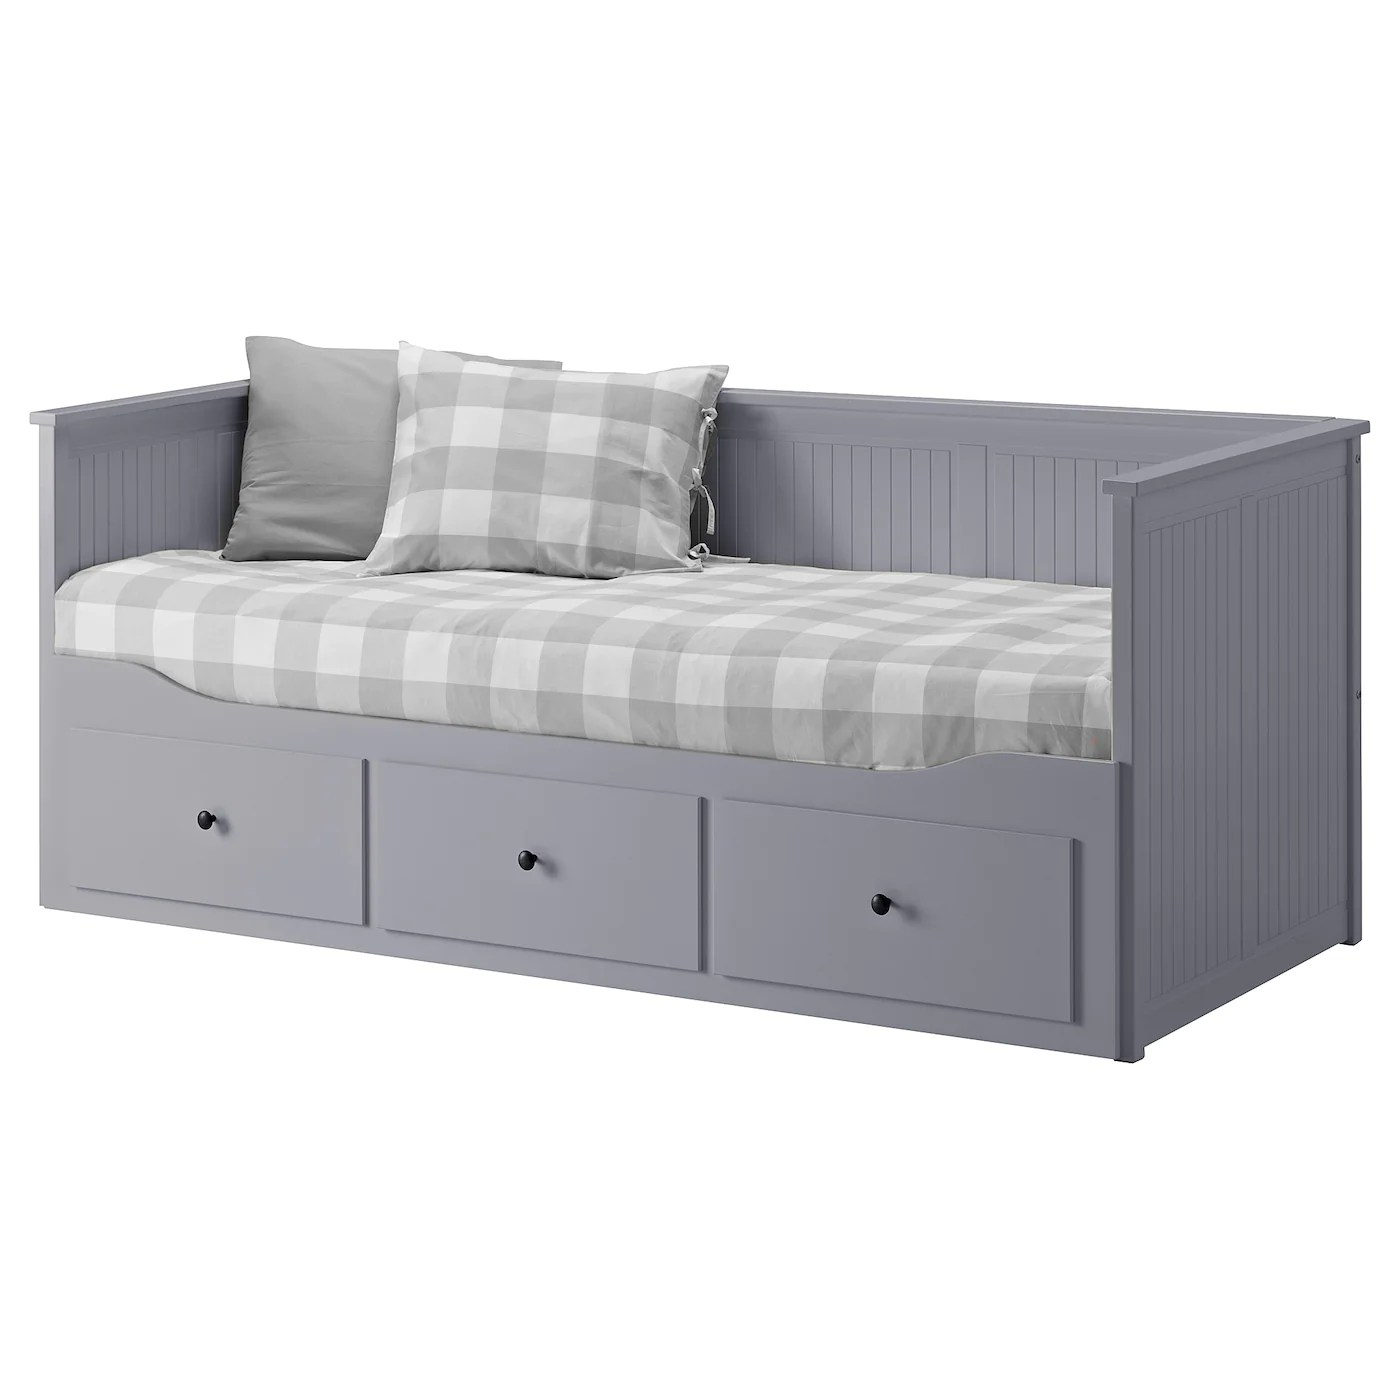 Z Beds For Adults Guest Beds Fold Up Beds Ikea